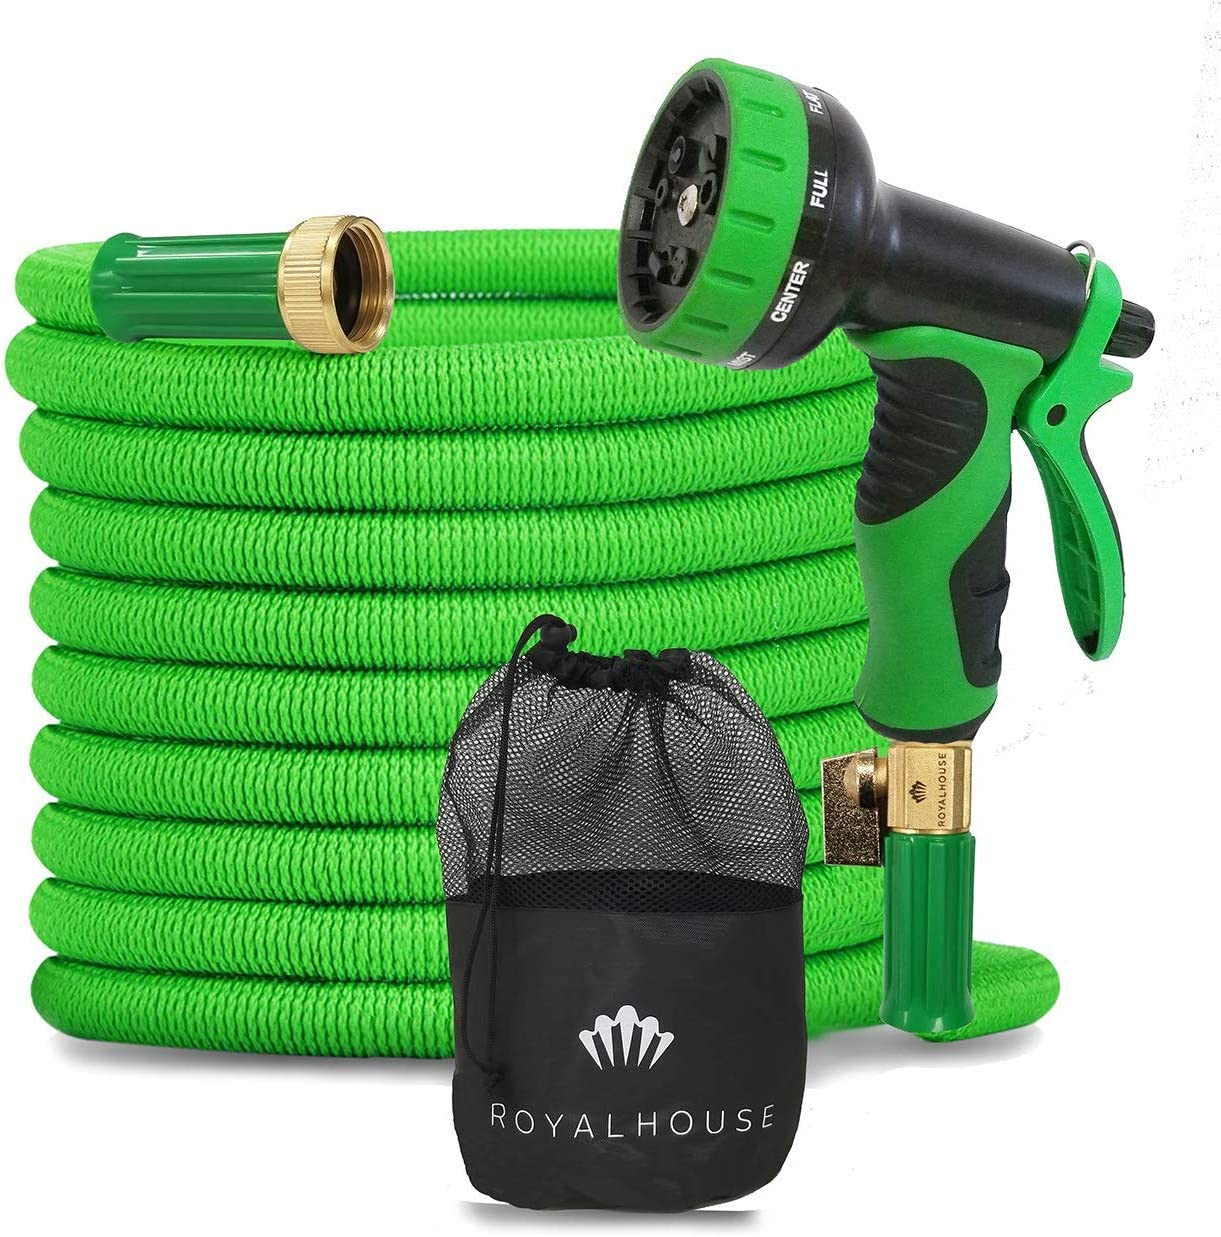 RoyalHouse Green Expandable Garden Hose Water Hose with 9-Function High-Pressure Spray Nozzle, Heavy Duty Flexible Hose - 3/4